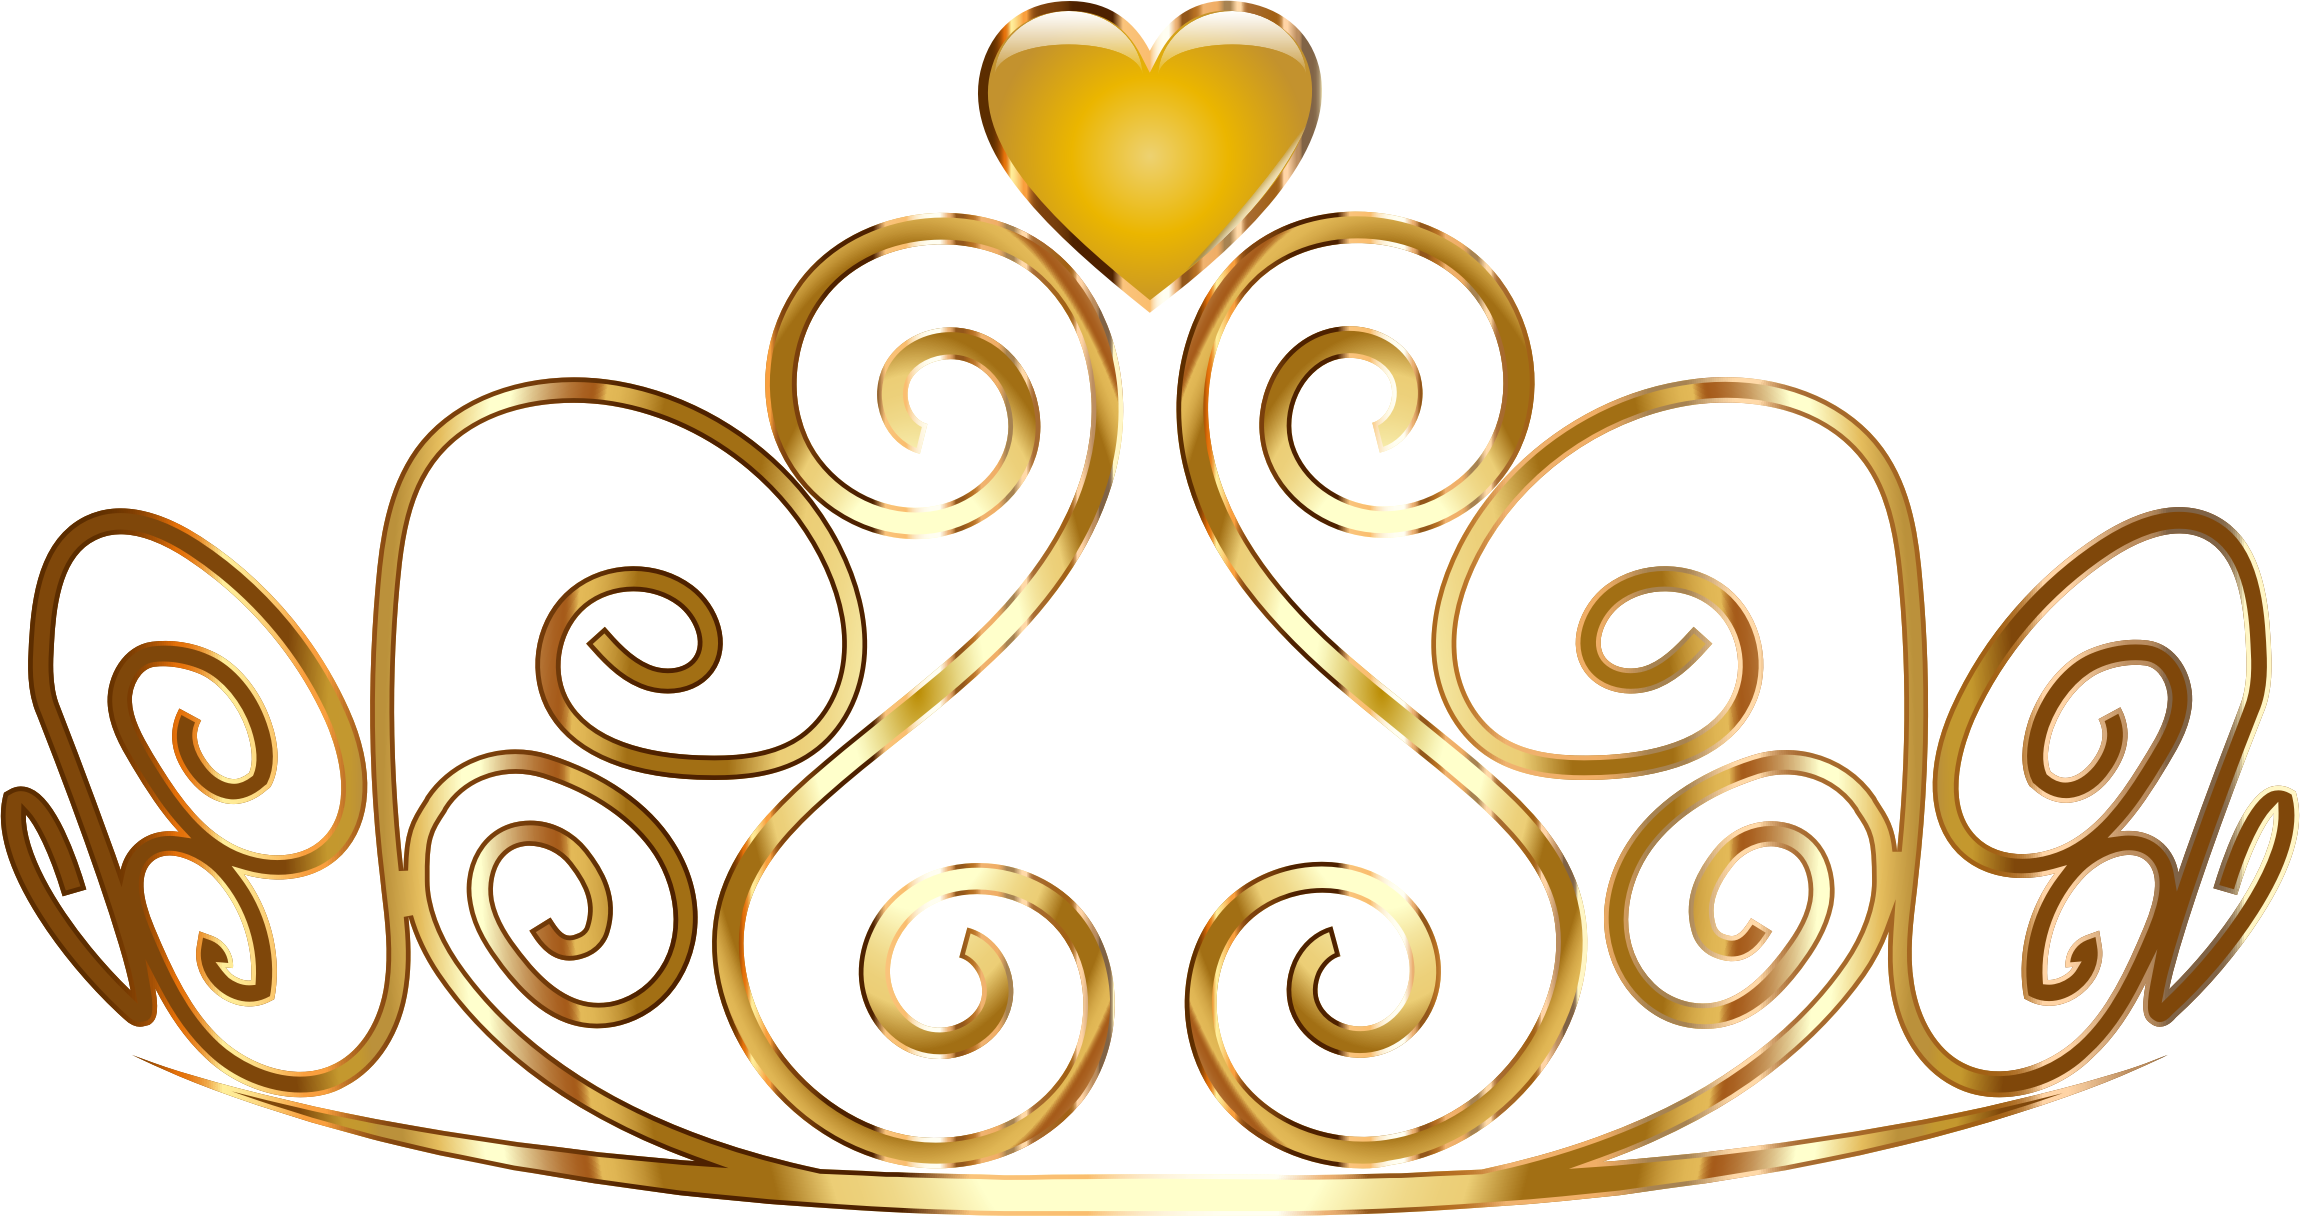 Gold crown clipart no background besides gold crown clipart picture - Gold Princess Crown Clipart Photo 16